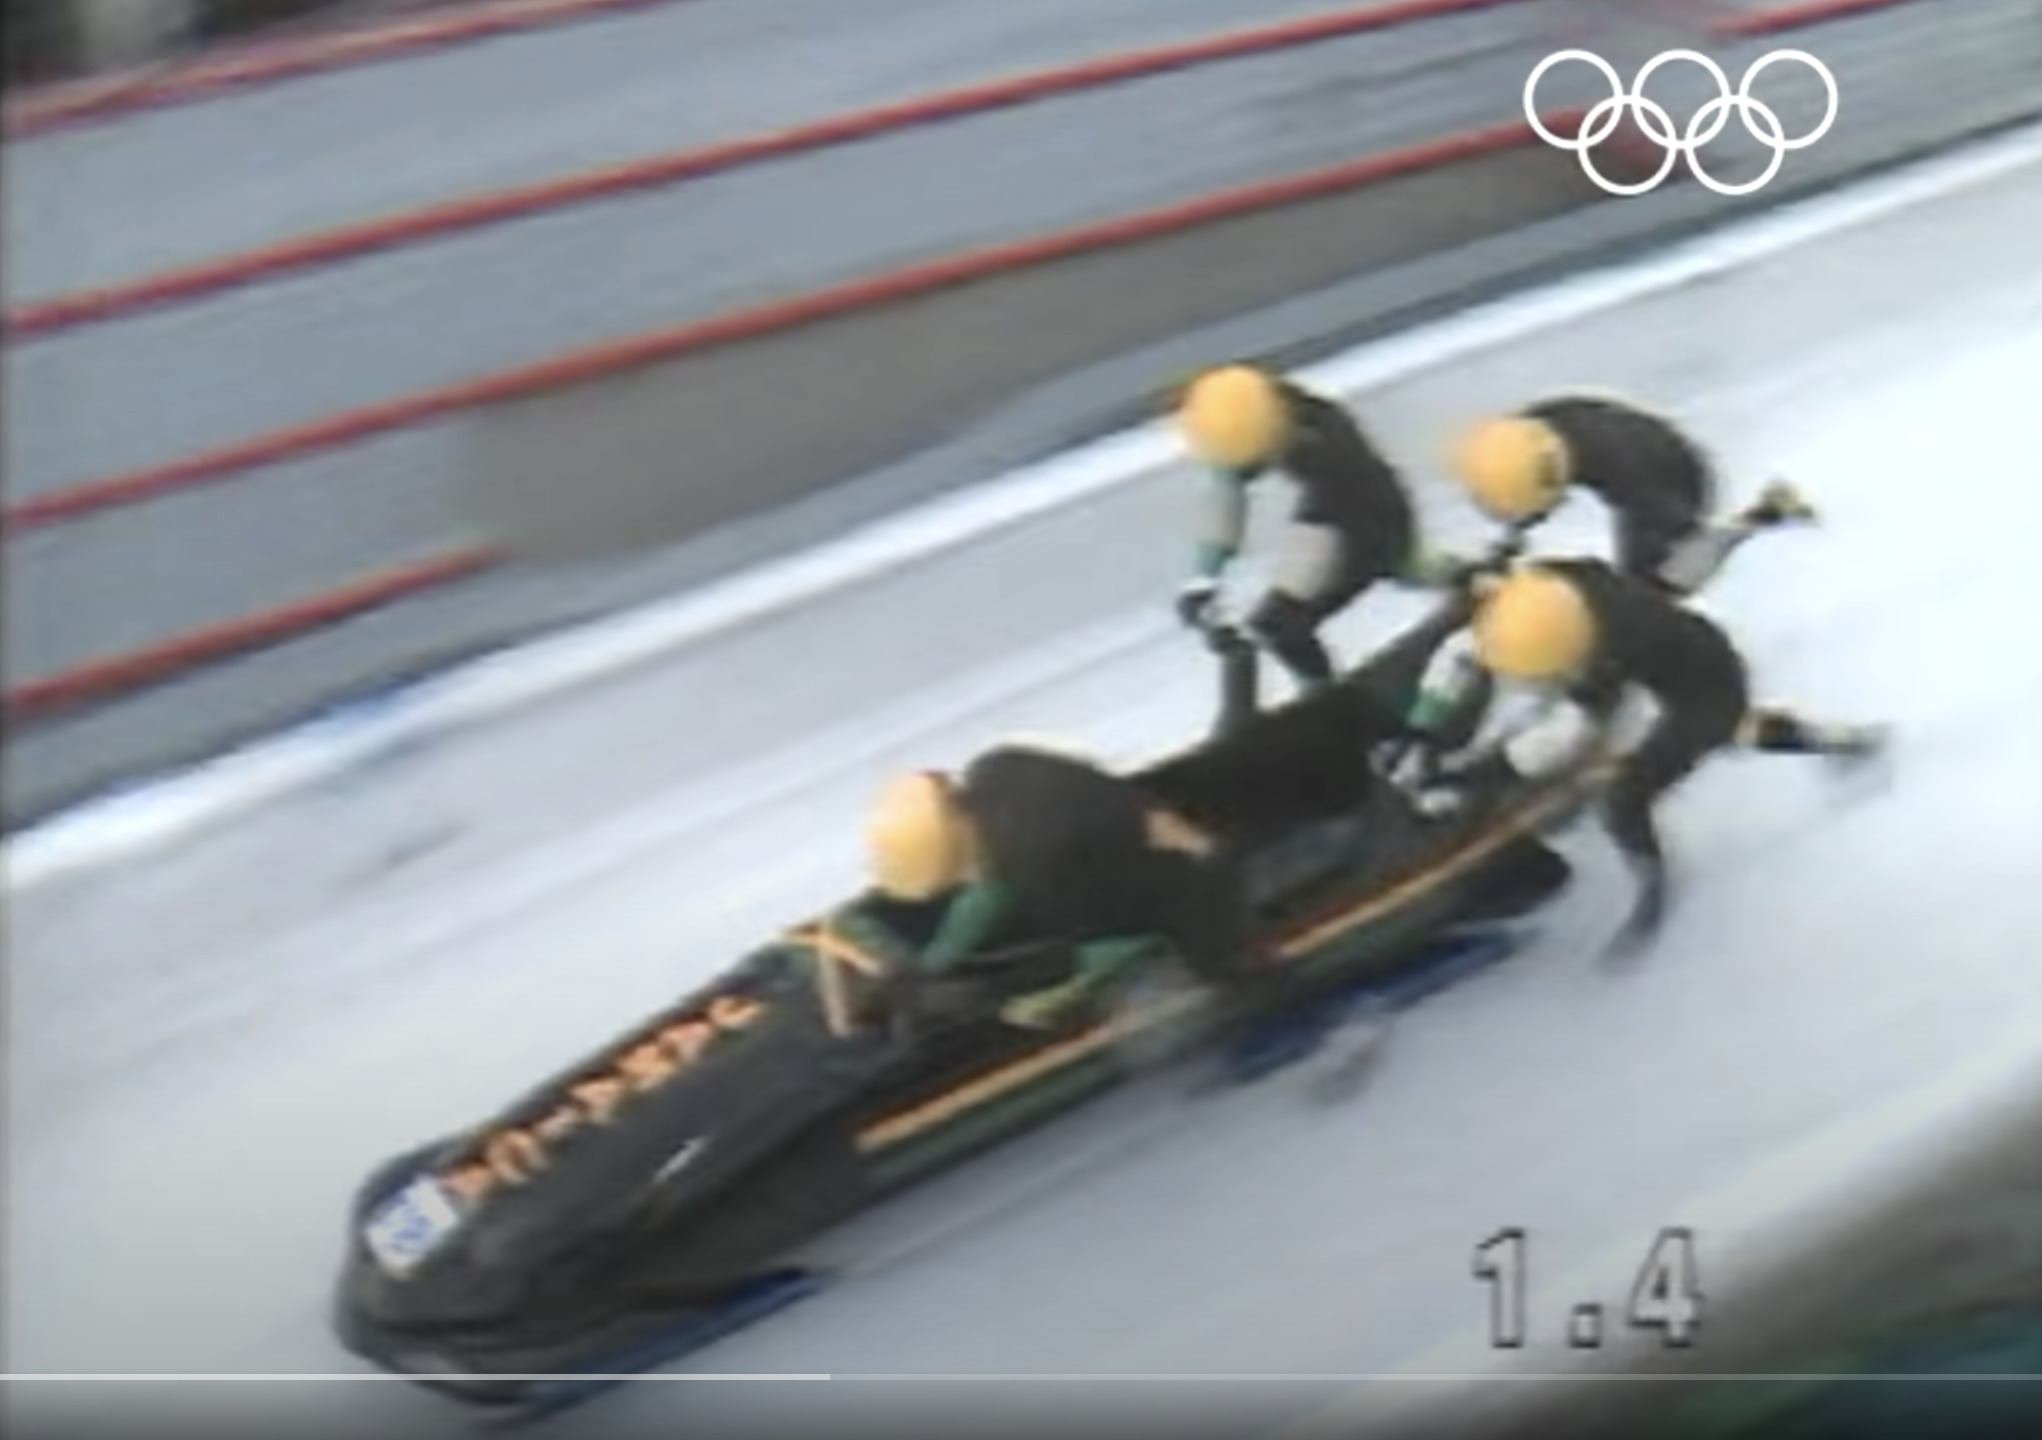 pic of Jamaican bobsledders starting down the track